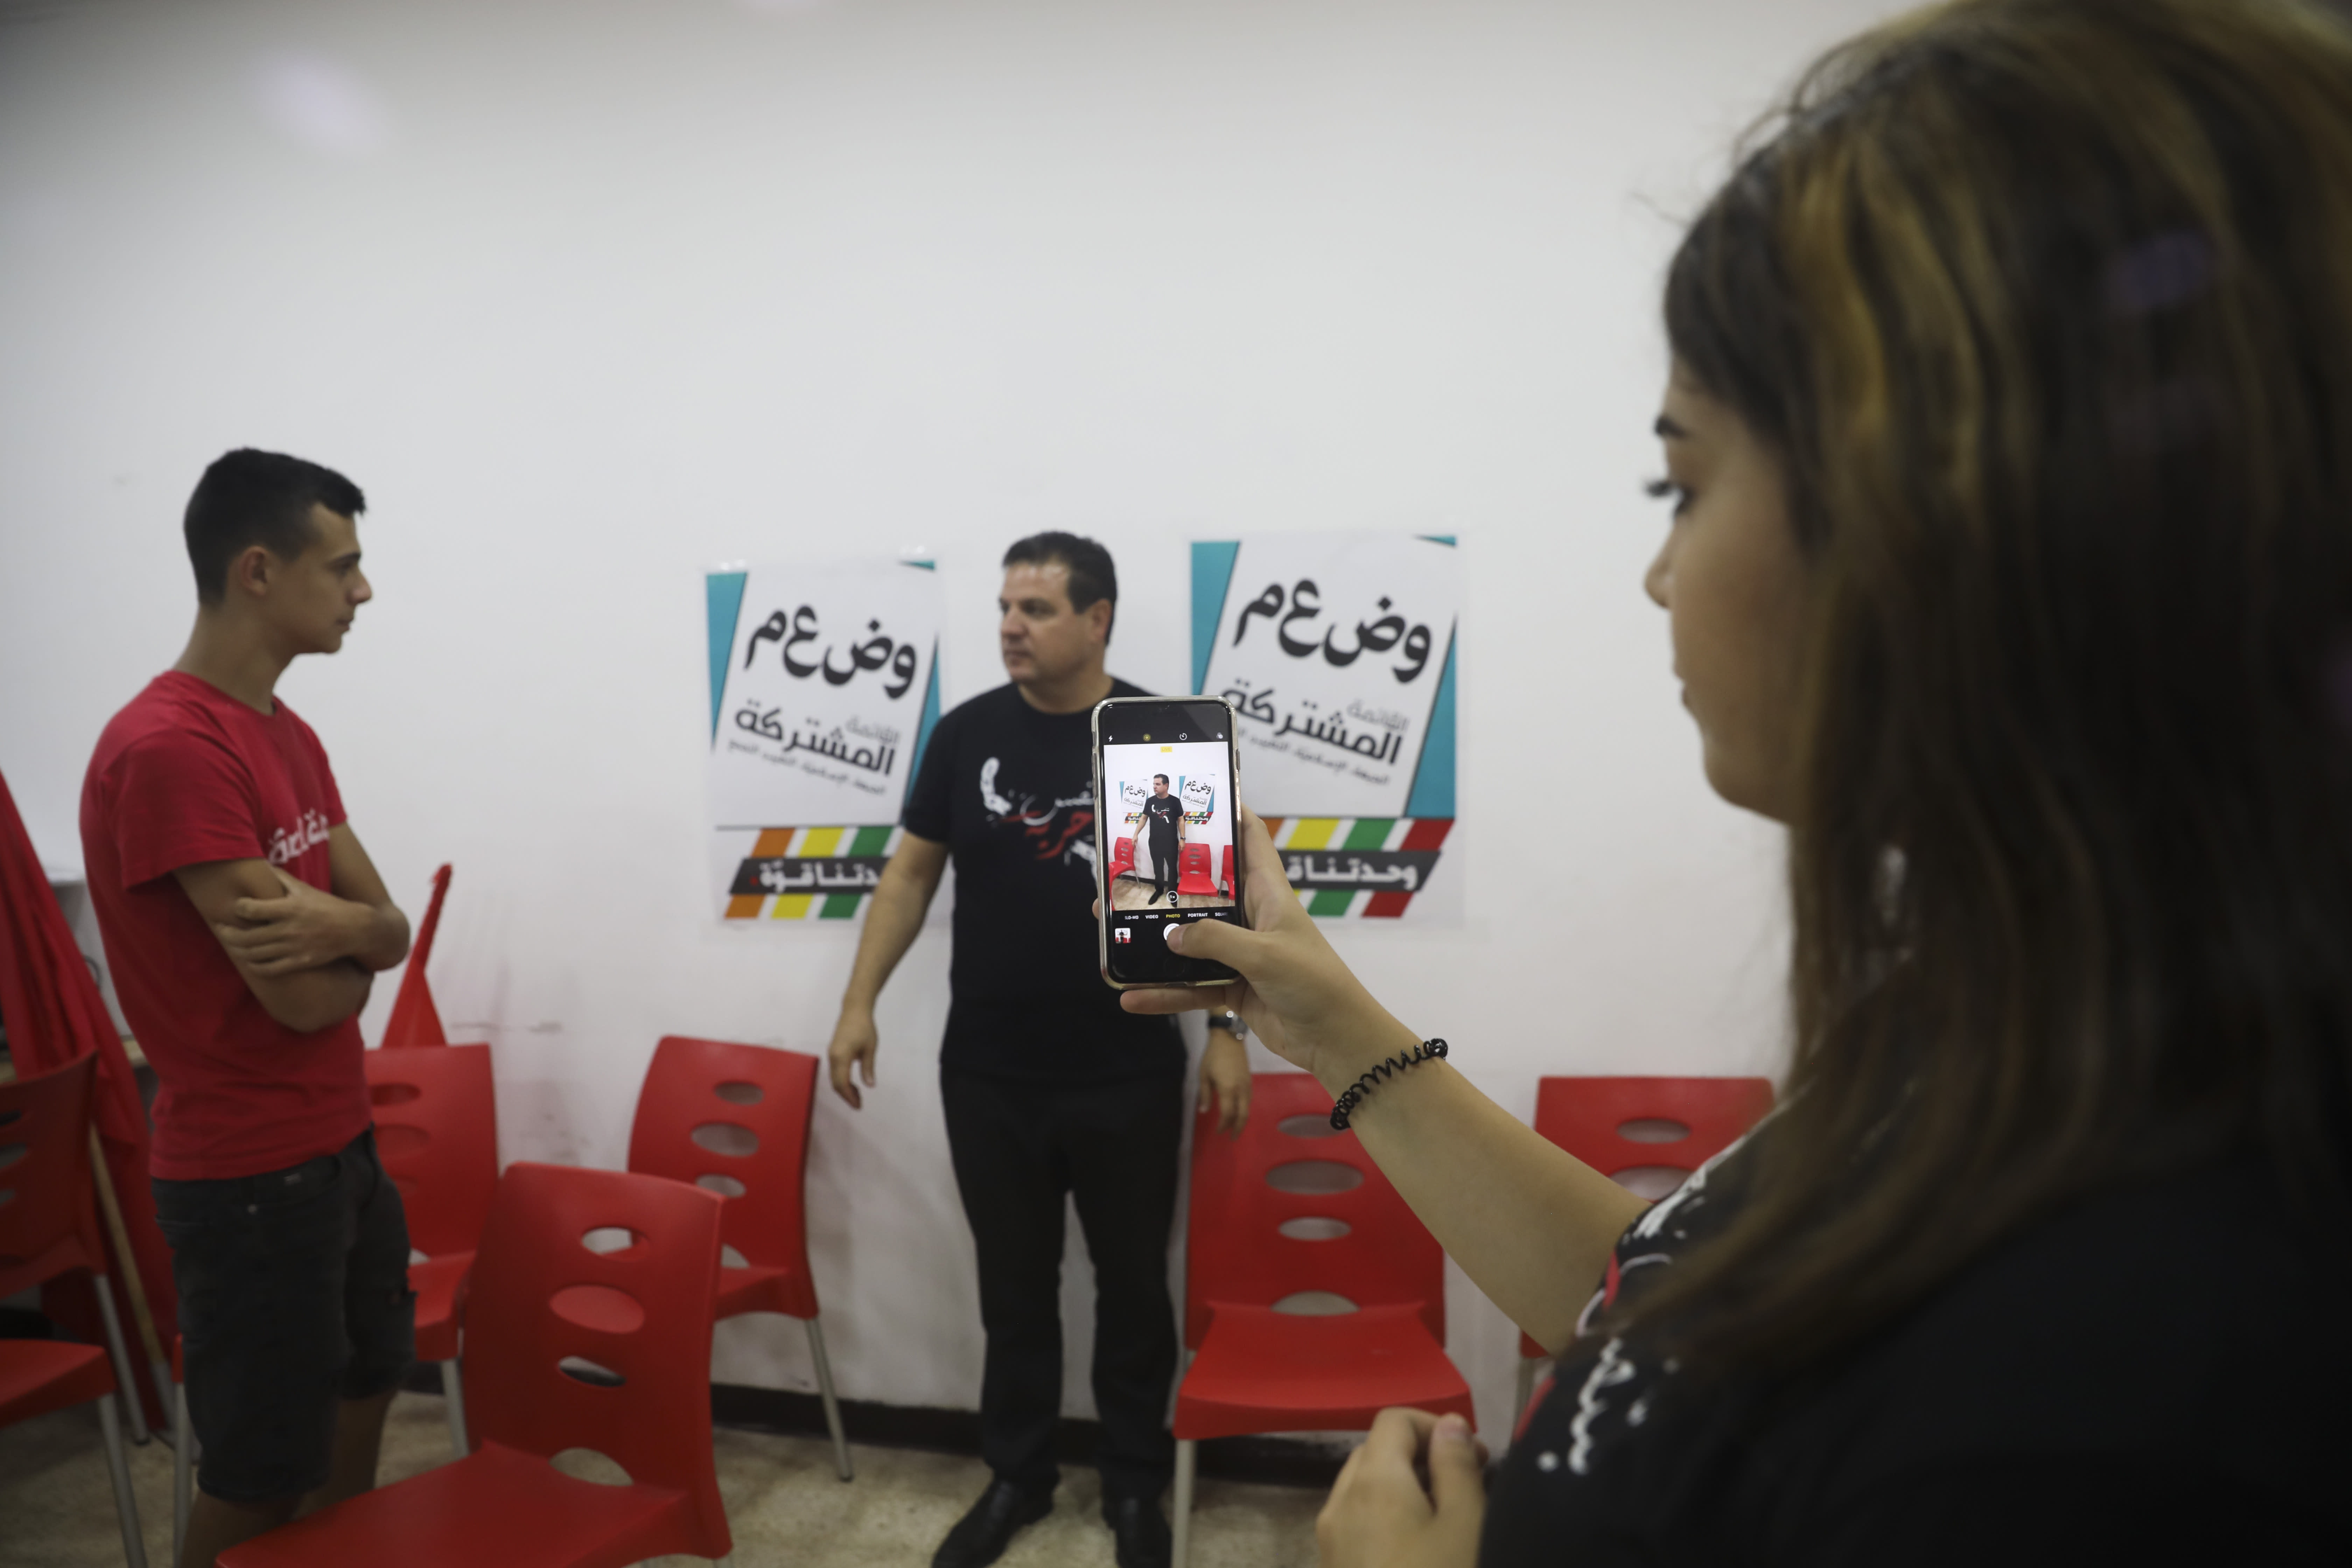 In this Thursday, Aug. 29, 2019 photo, an activist takes a photo of Ayman Odeh, the leader of the Arab Joint List parties, during a campaign meeting in Nazareth, Israel. Odeh has shaken up Israel's election campaign by offering to sit in a moderate coalition government _ a development that would upend decades of convention that has relegated Arab parties to the sidelines and could bring down Prime Minister Benjamin Netanyahu. (AP Photo/Mahmoud Illean)